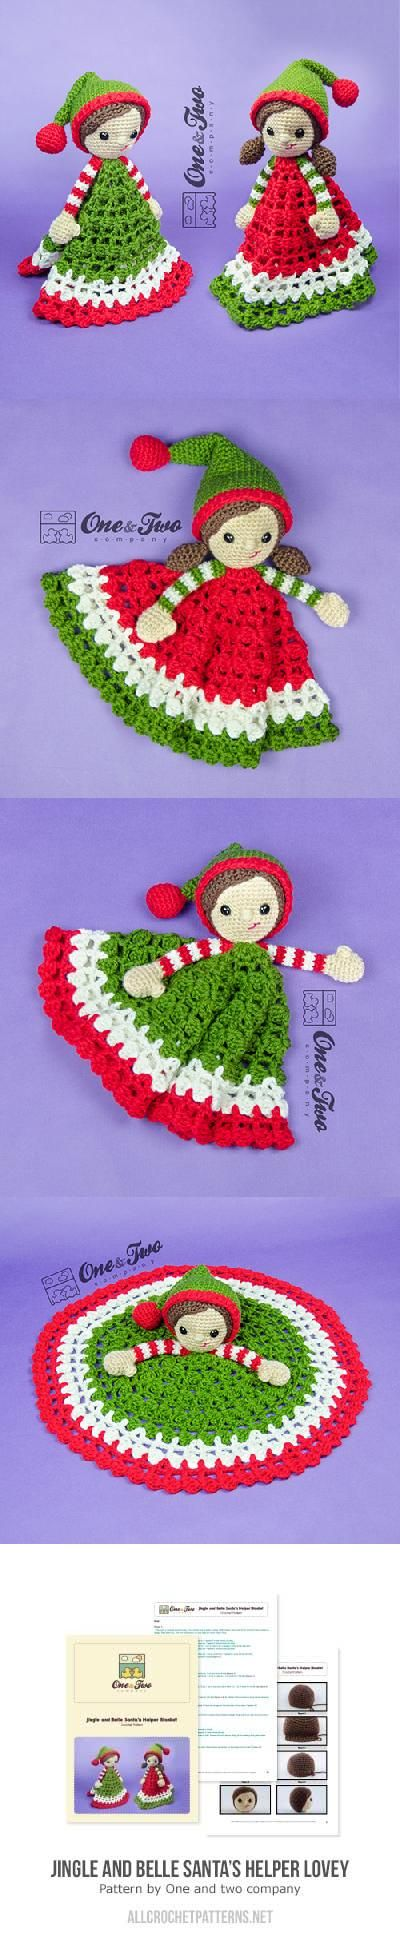 Jingle And Belle Santas Helper Lovey Crochet Pattern